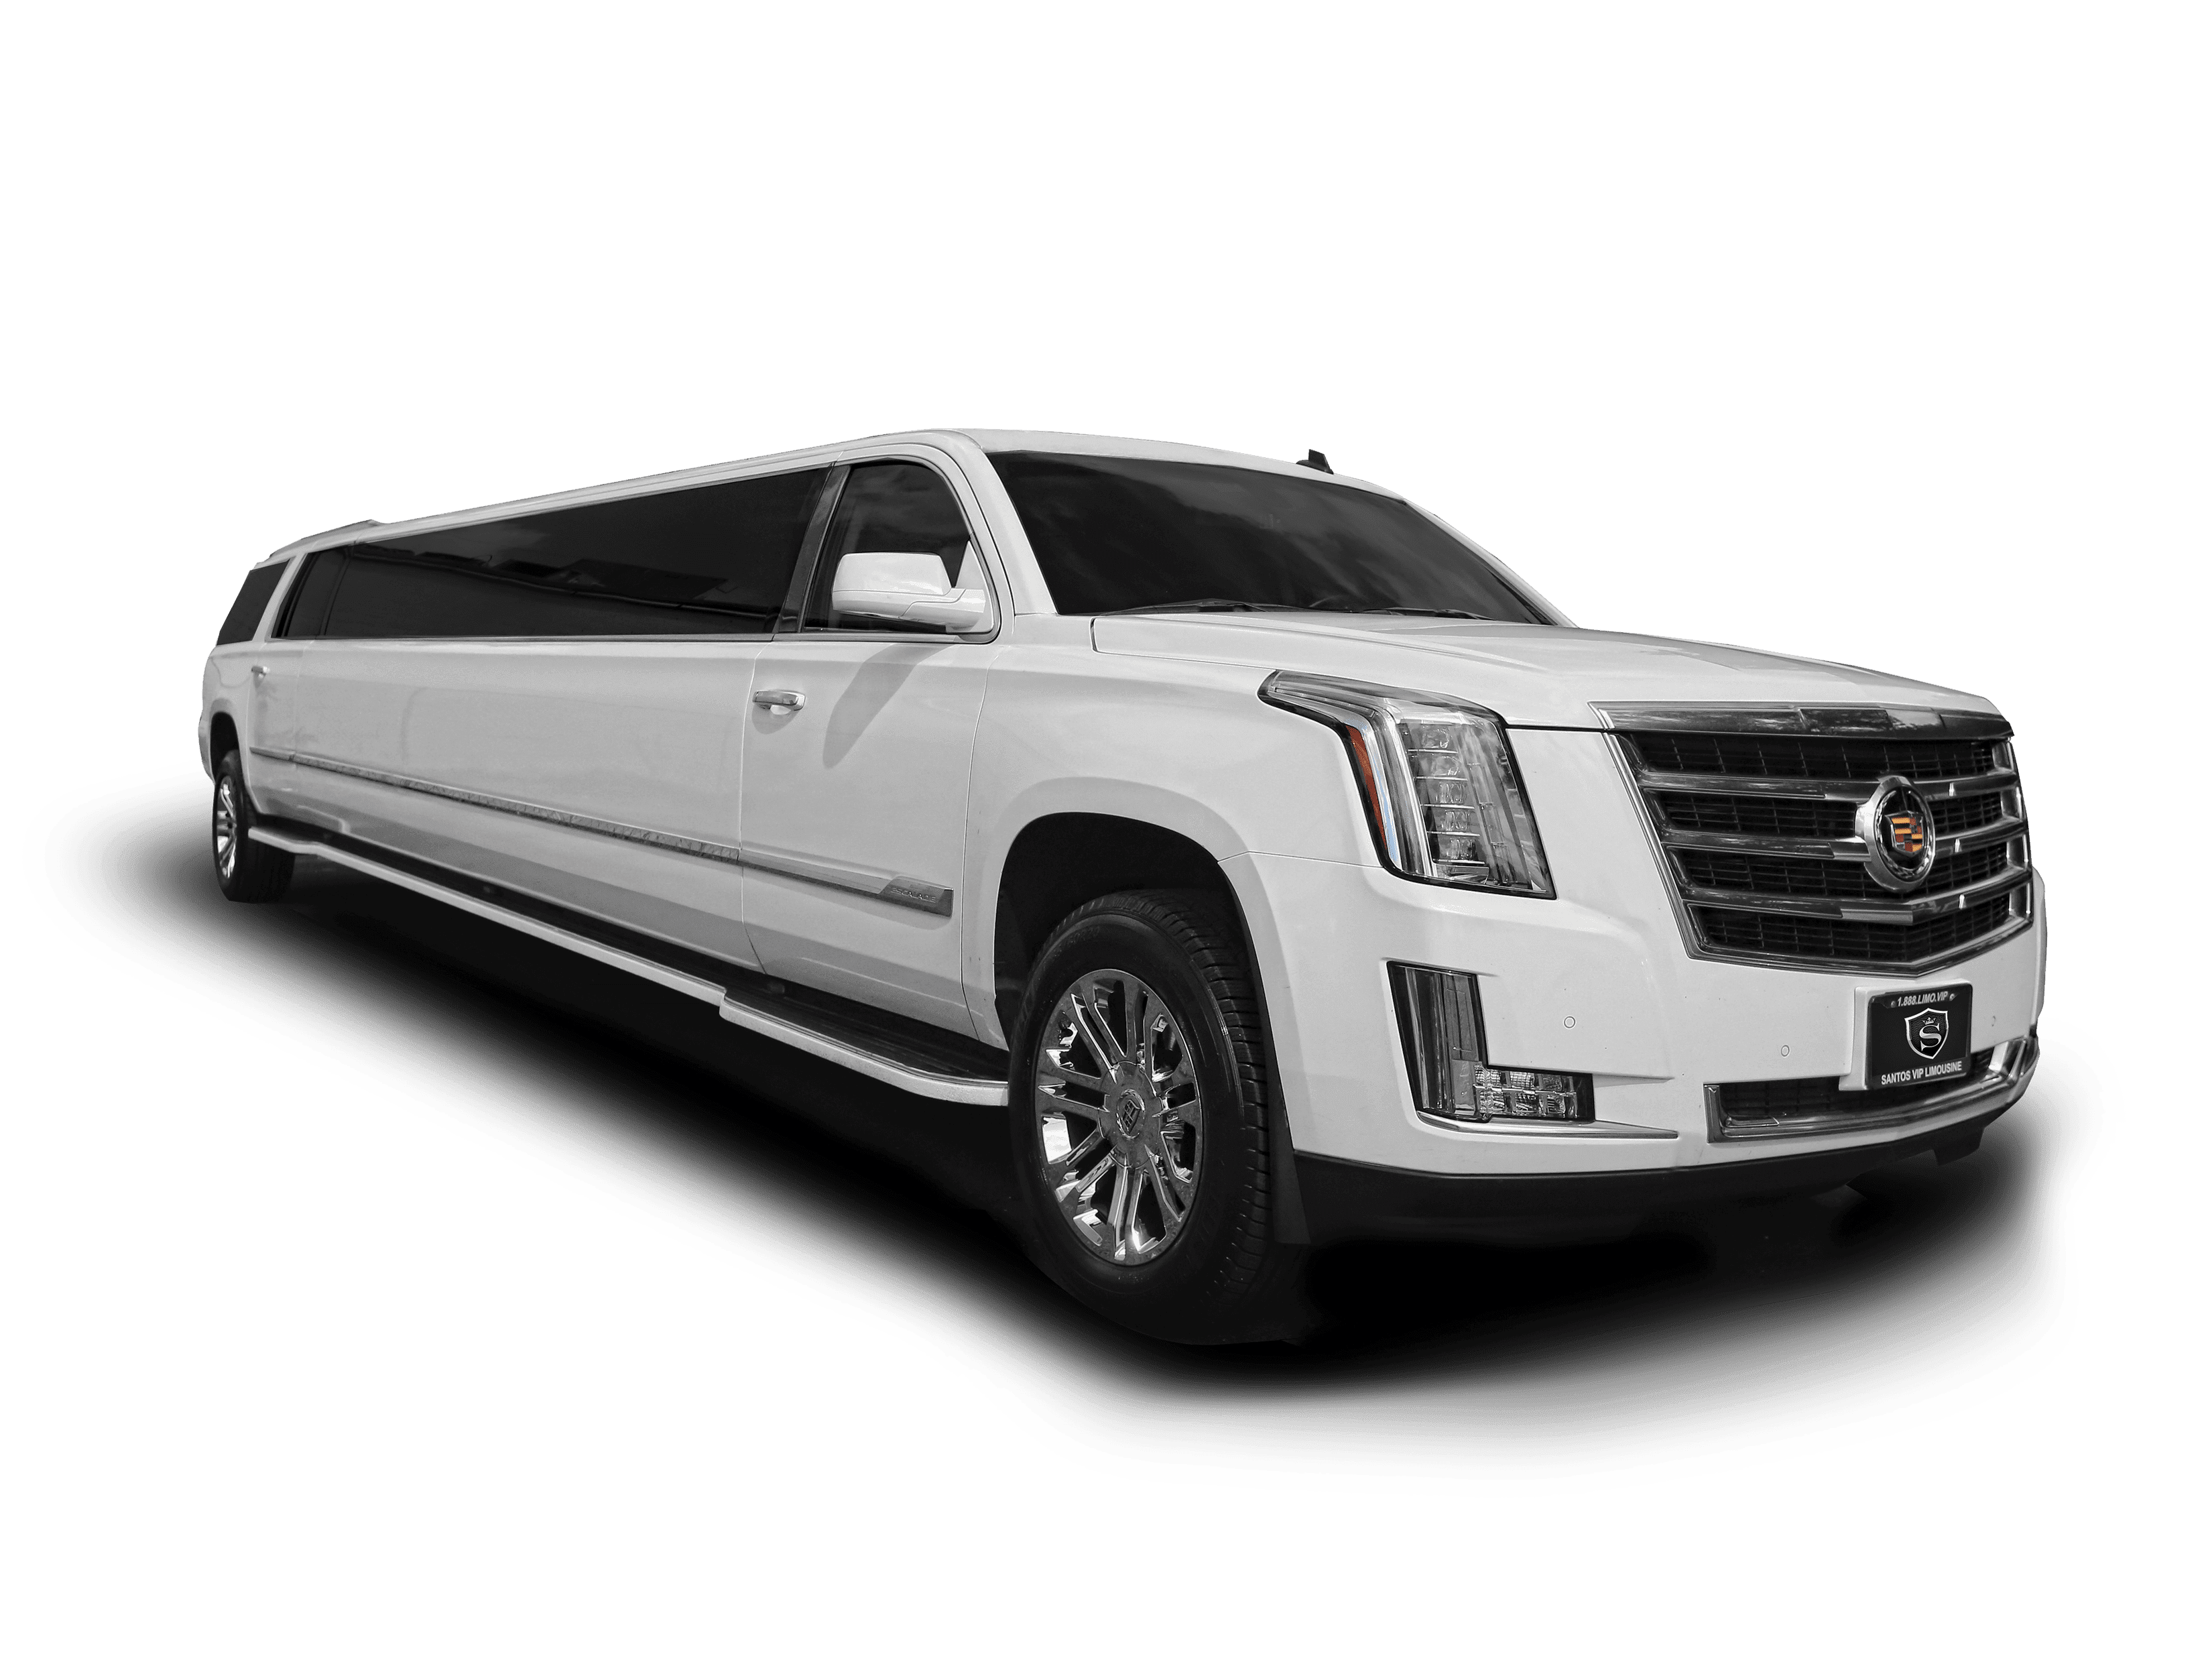 Cadillac Escalade ESV limousine for limo rental in NJ and NY